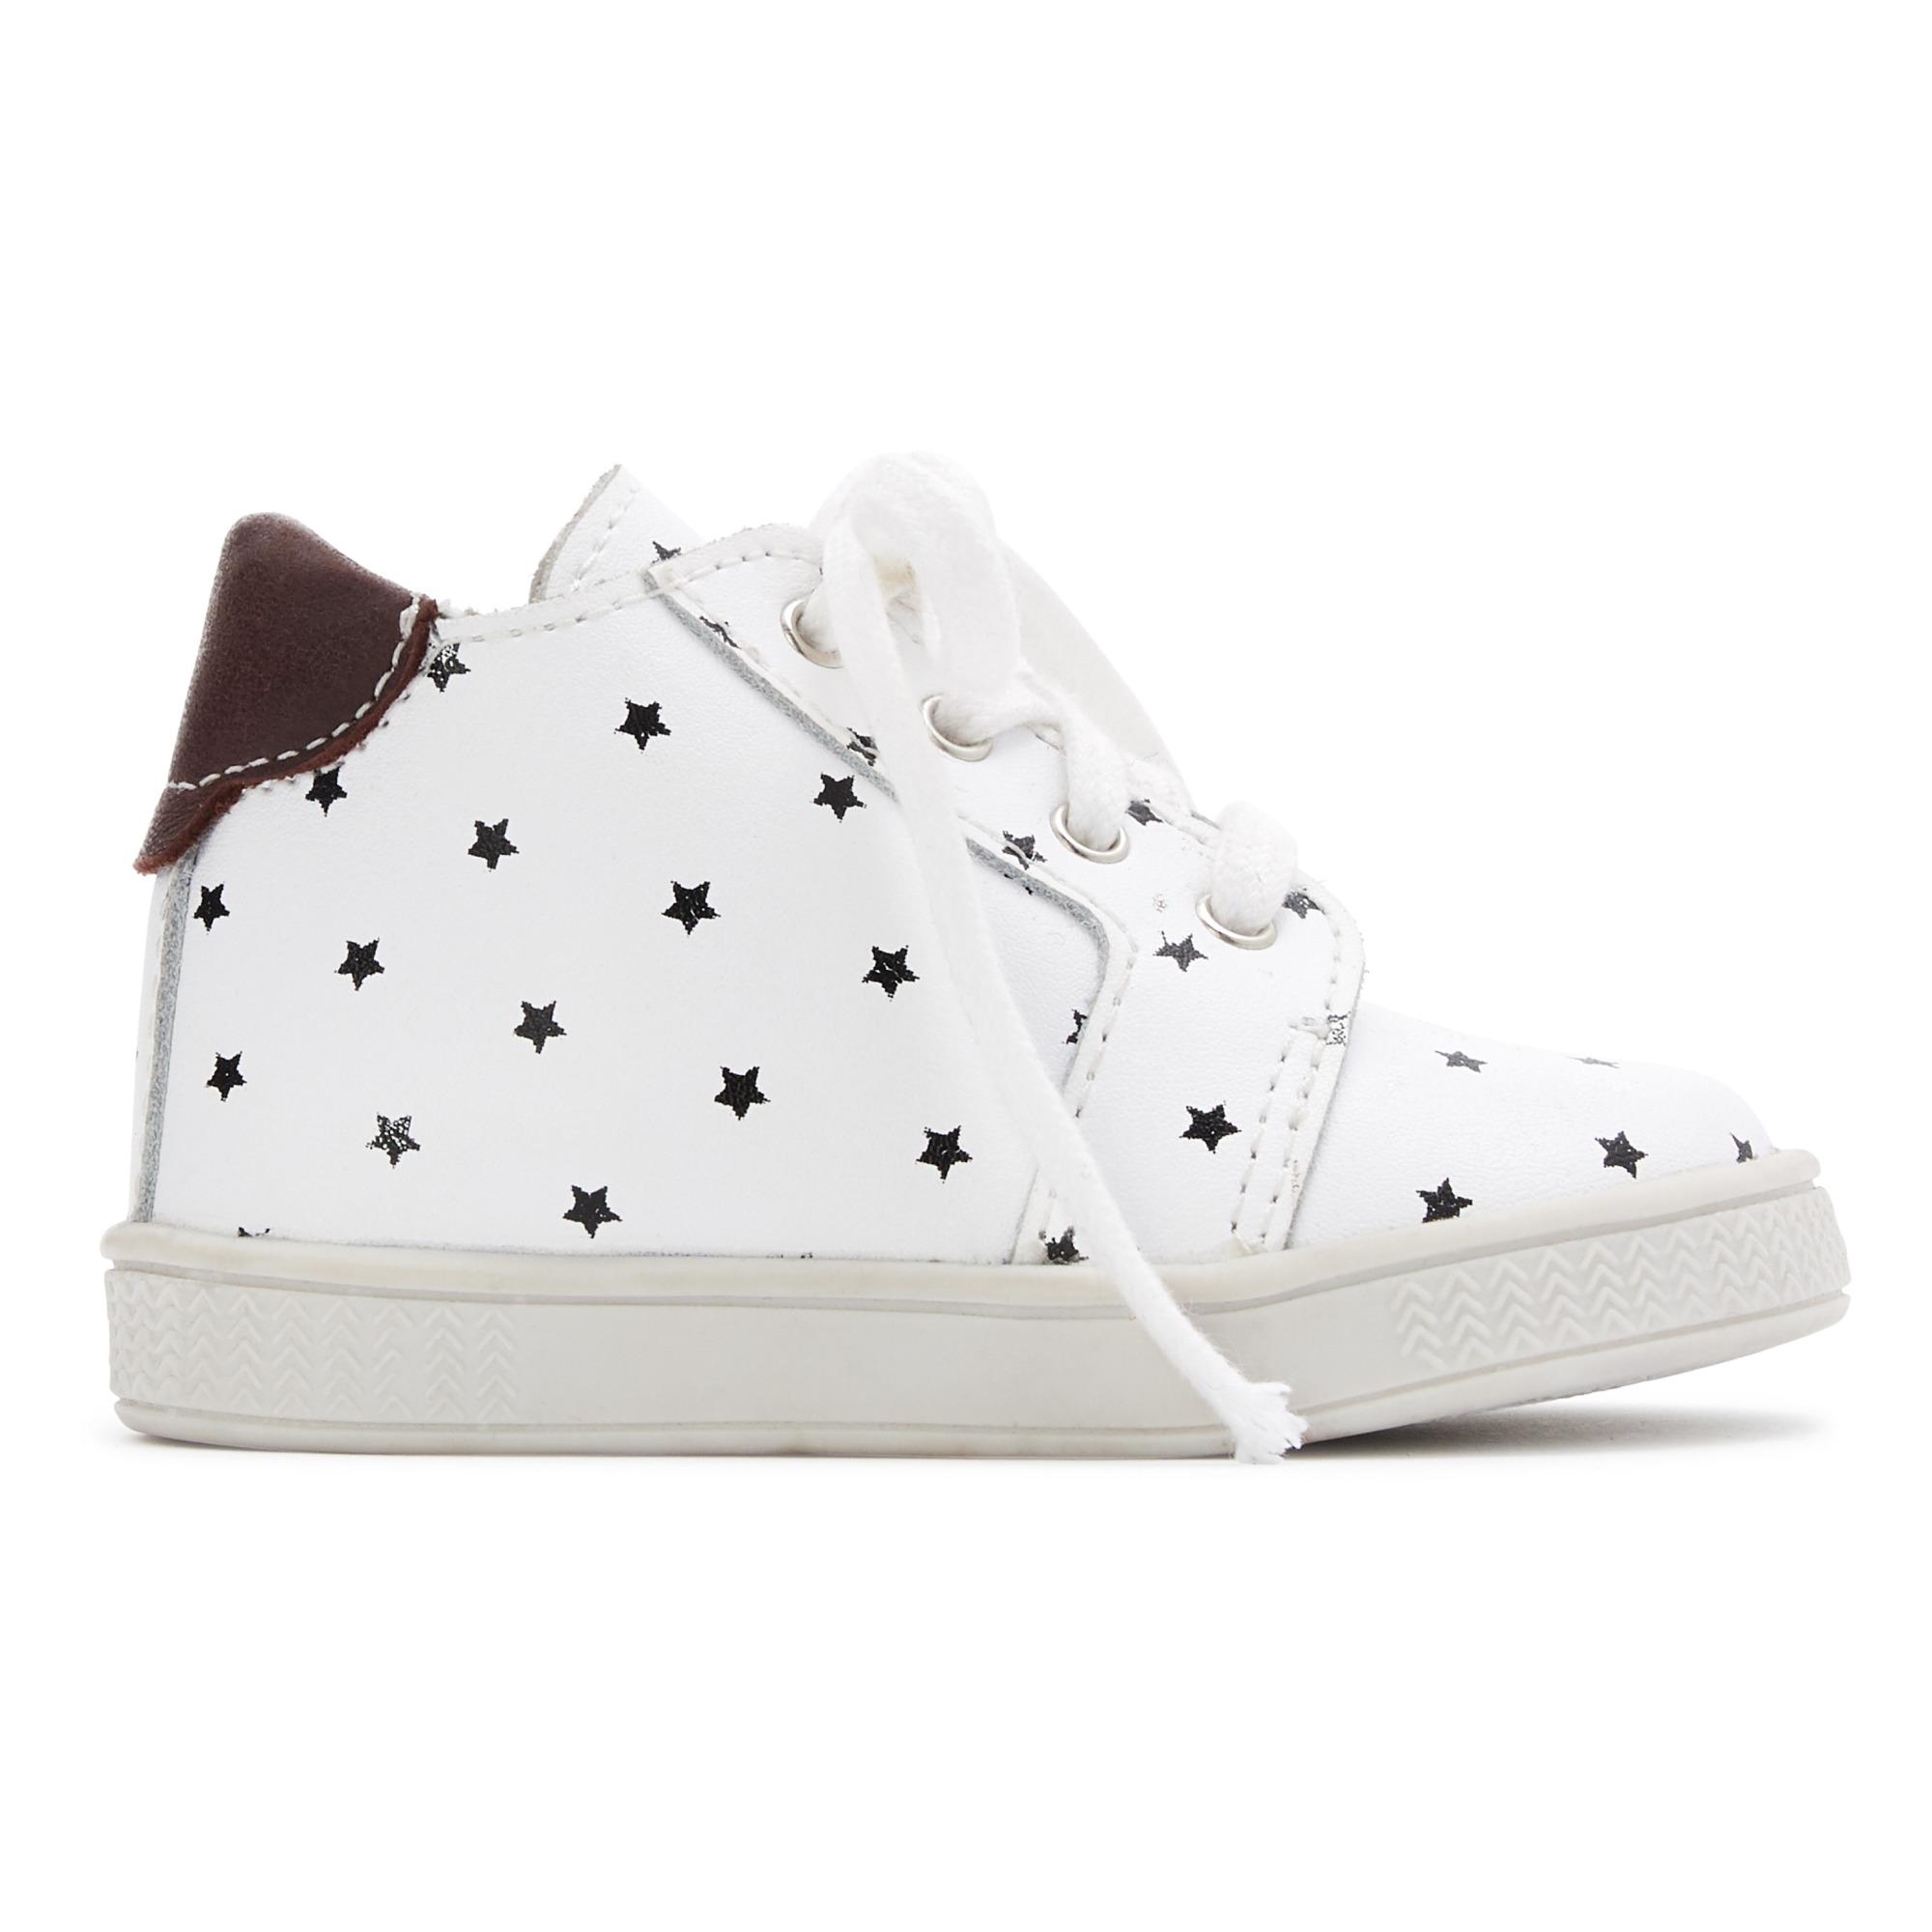 official images best price look good shoes sale Star Lace-up Trainers Ecru Bonton Shoes Baby